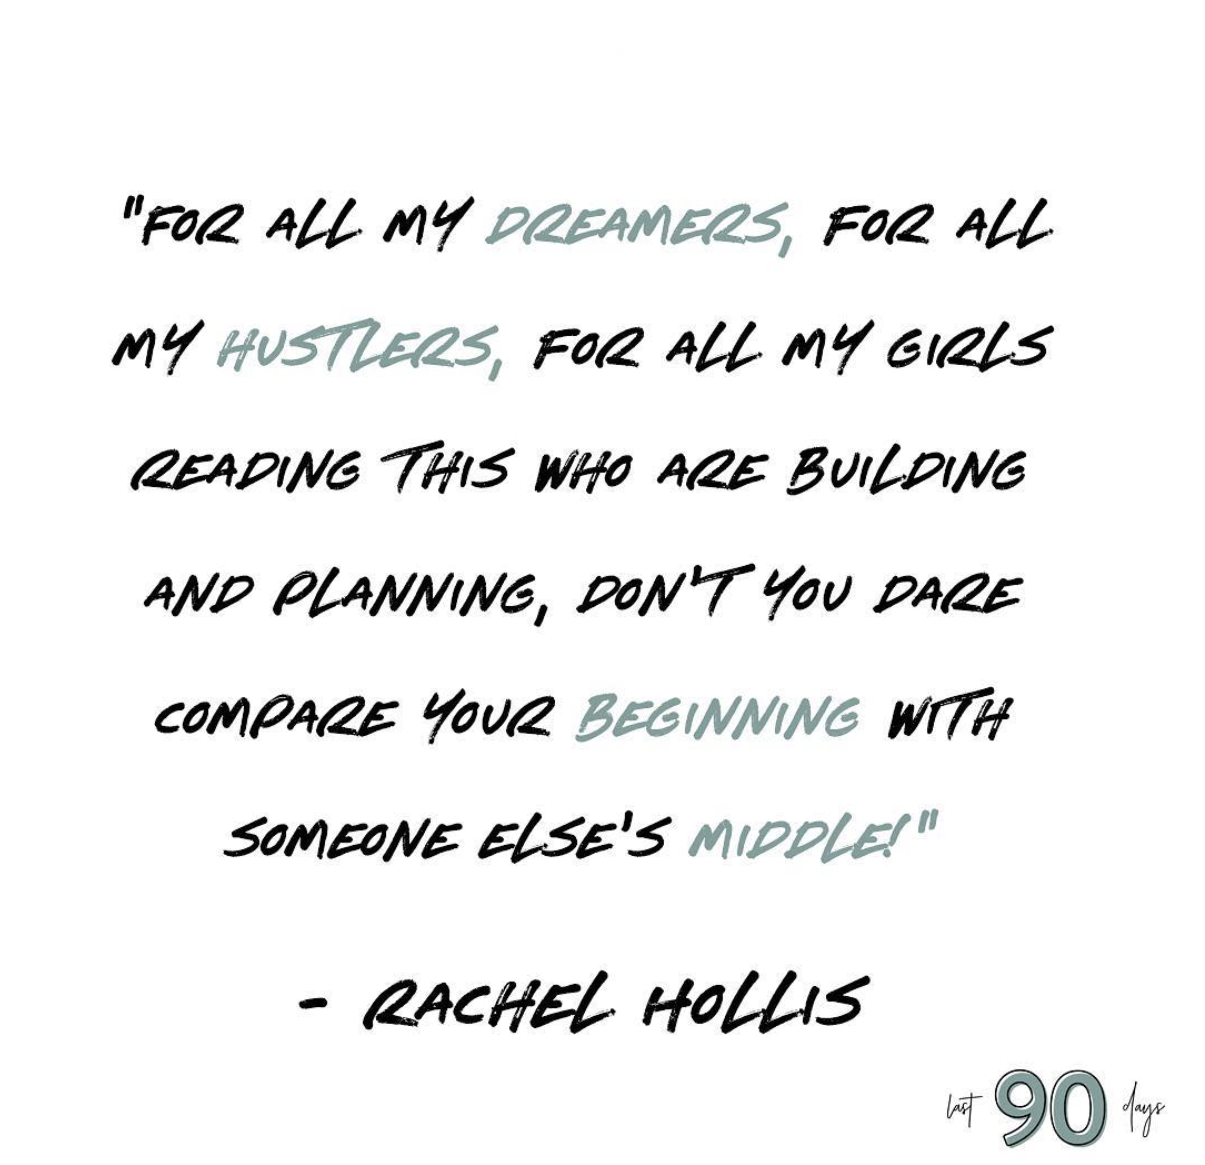 Rachel Hollis Has Been Accused Of Plagiarizing Quotes On Her